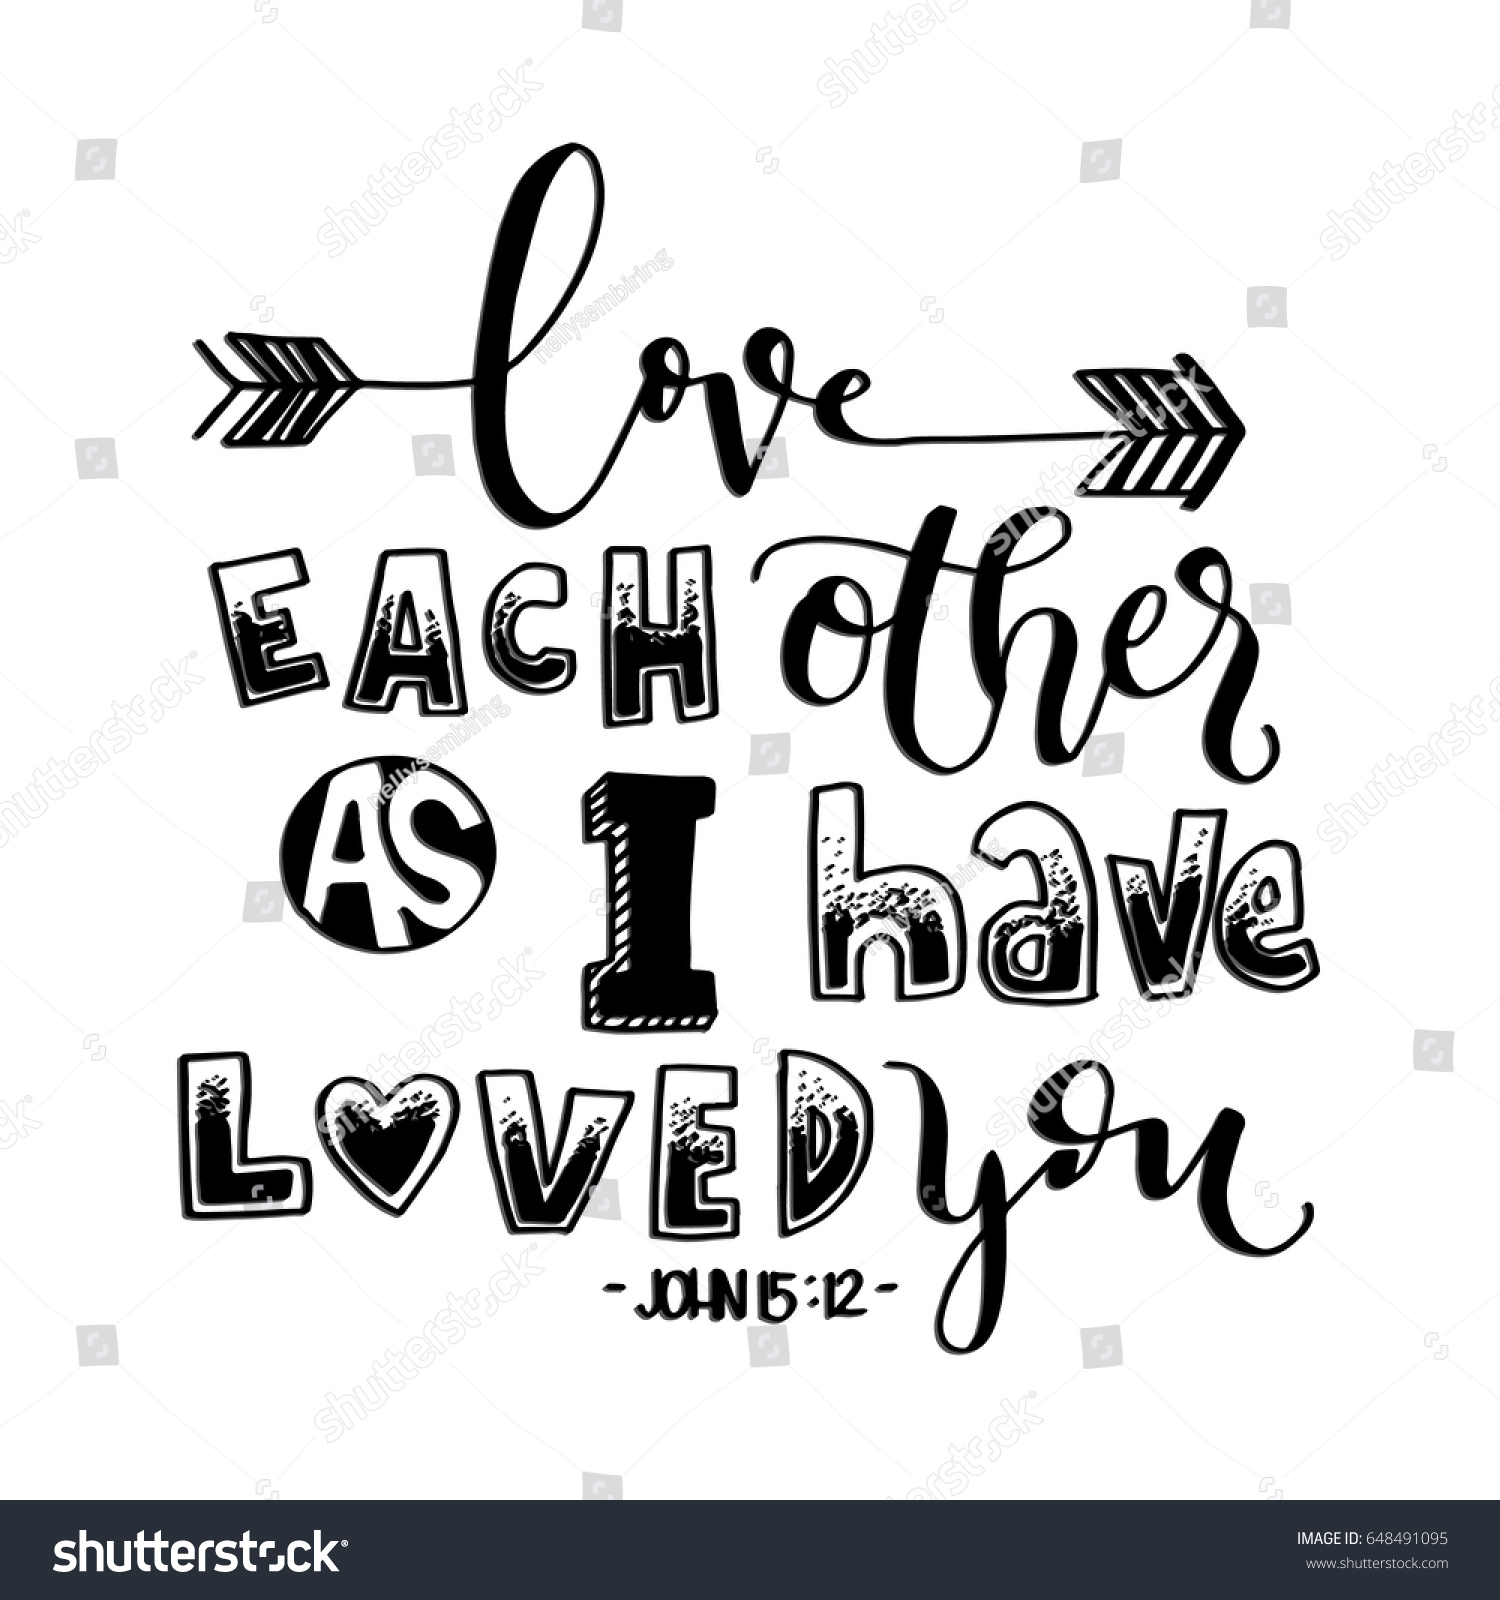 Love Each Other As I Have Loved You: Love Each Other Have Loved You Stock Vector 648491095